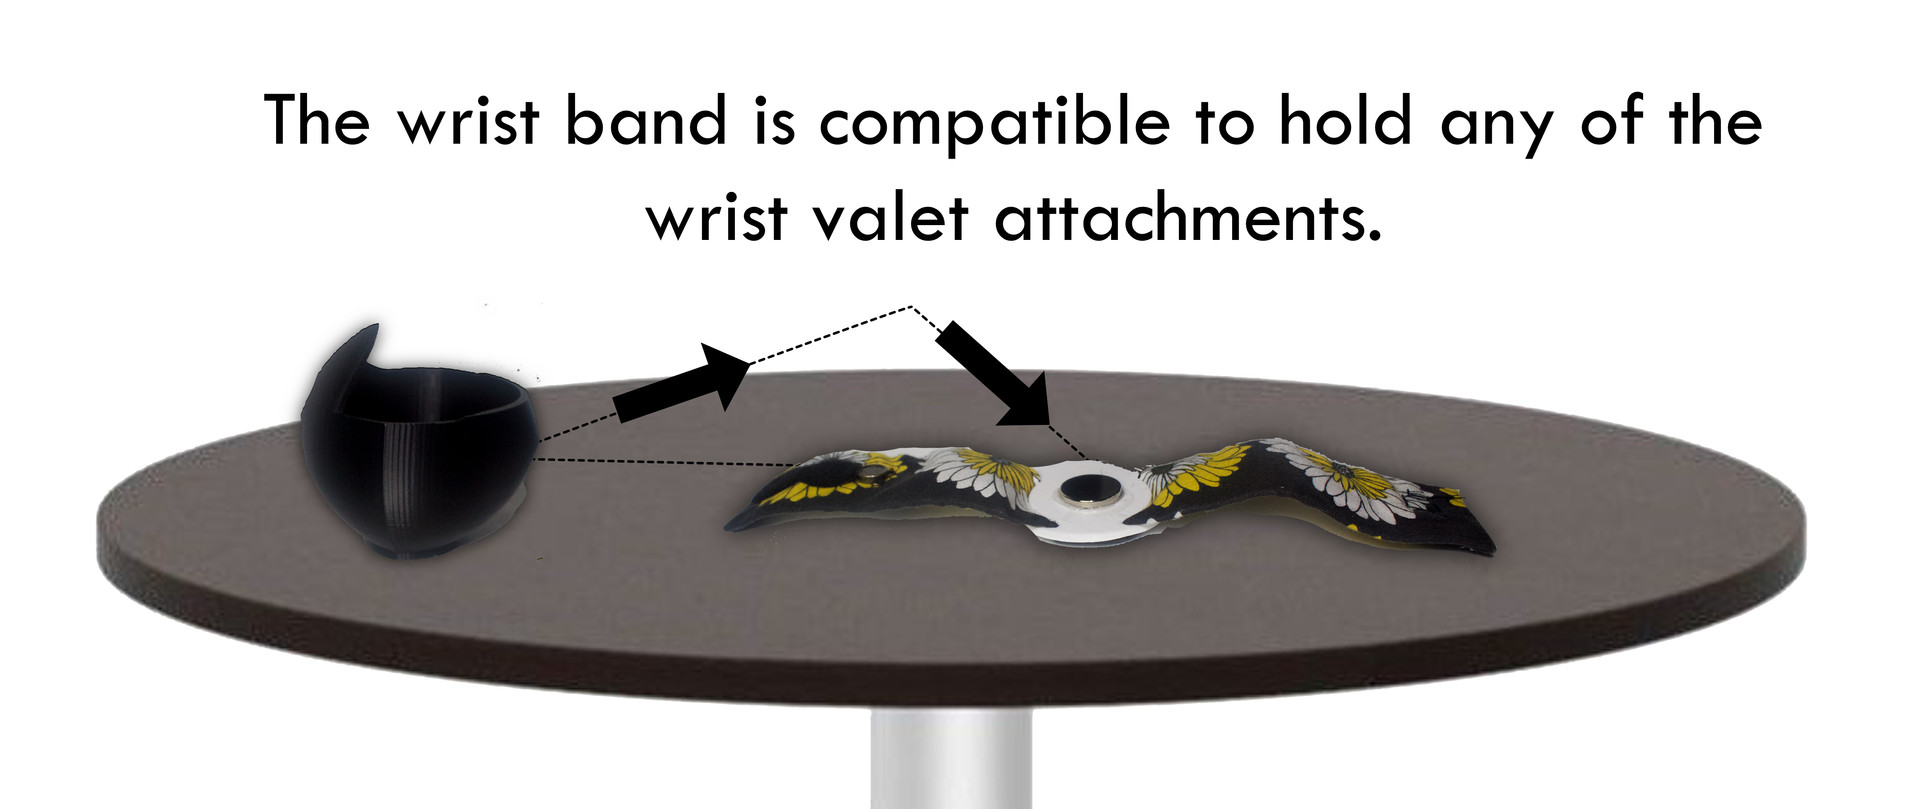 How to Use the Wrist Valet